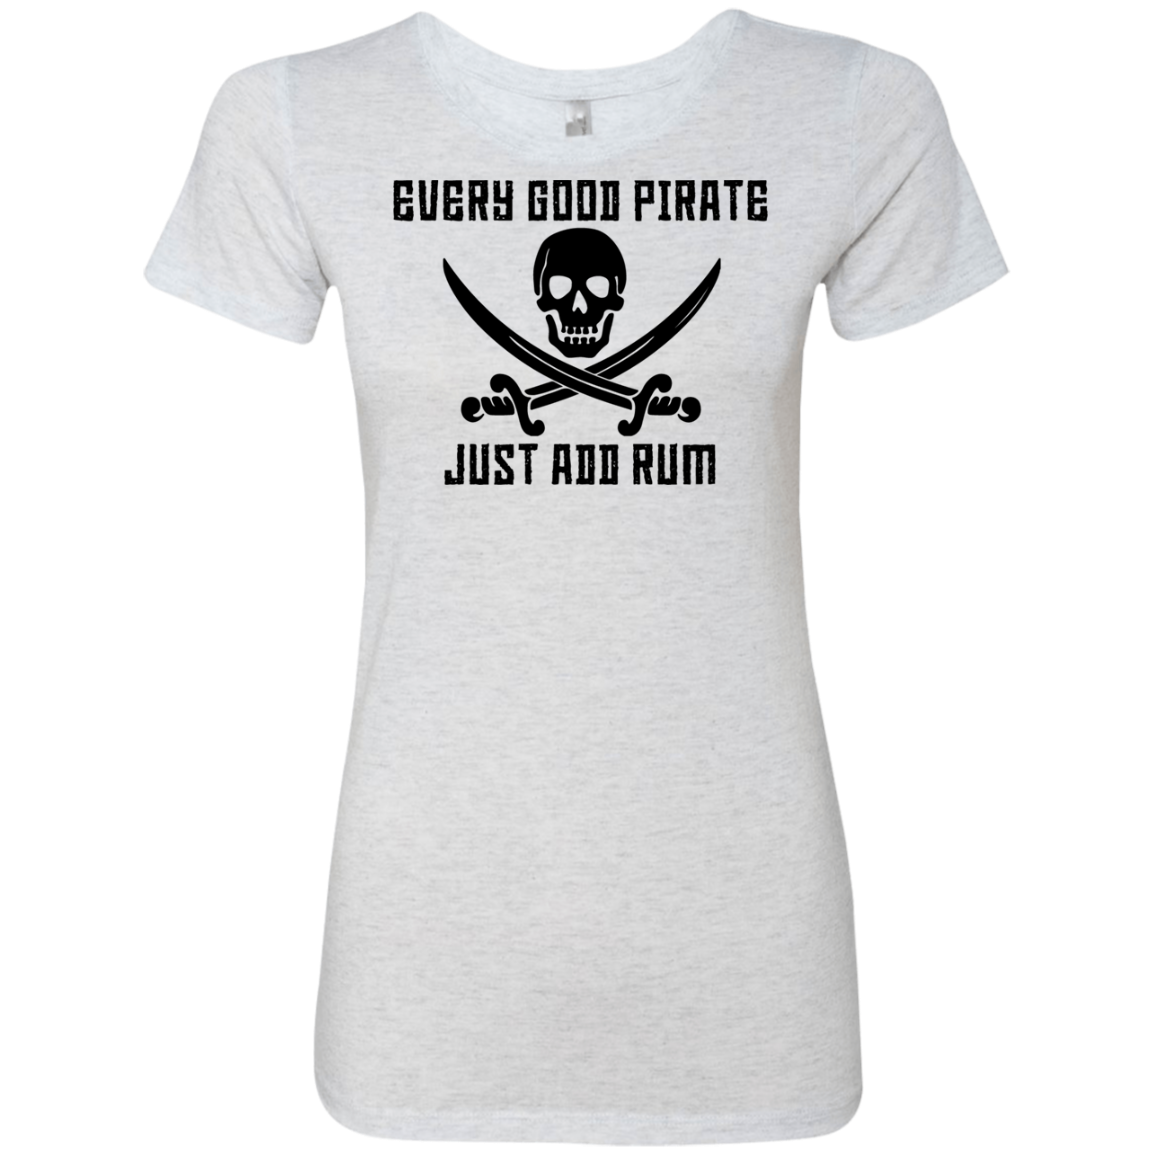 Every Good Pirate Just Add Rum Women's Classic Tee